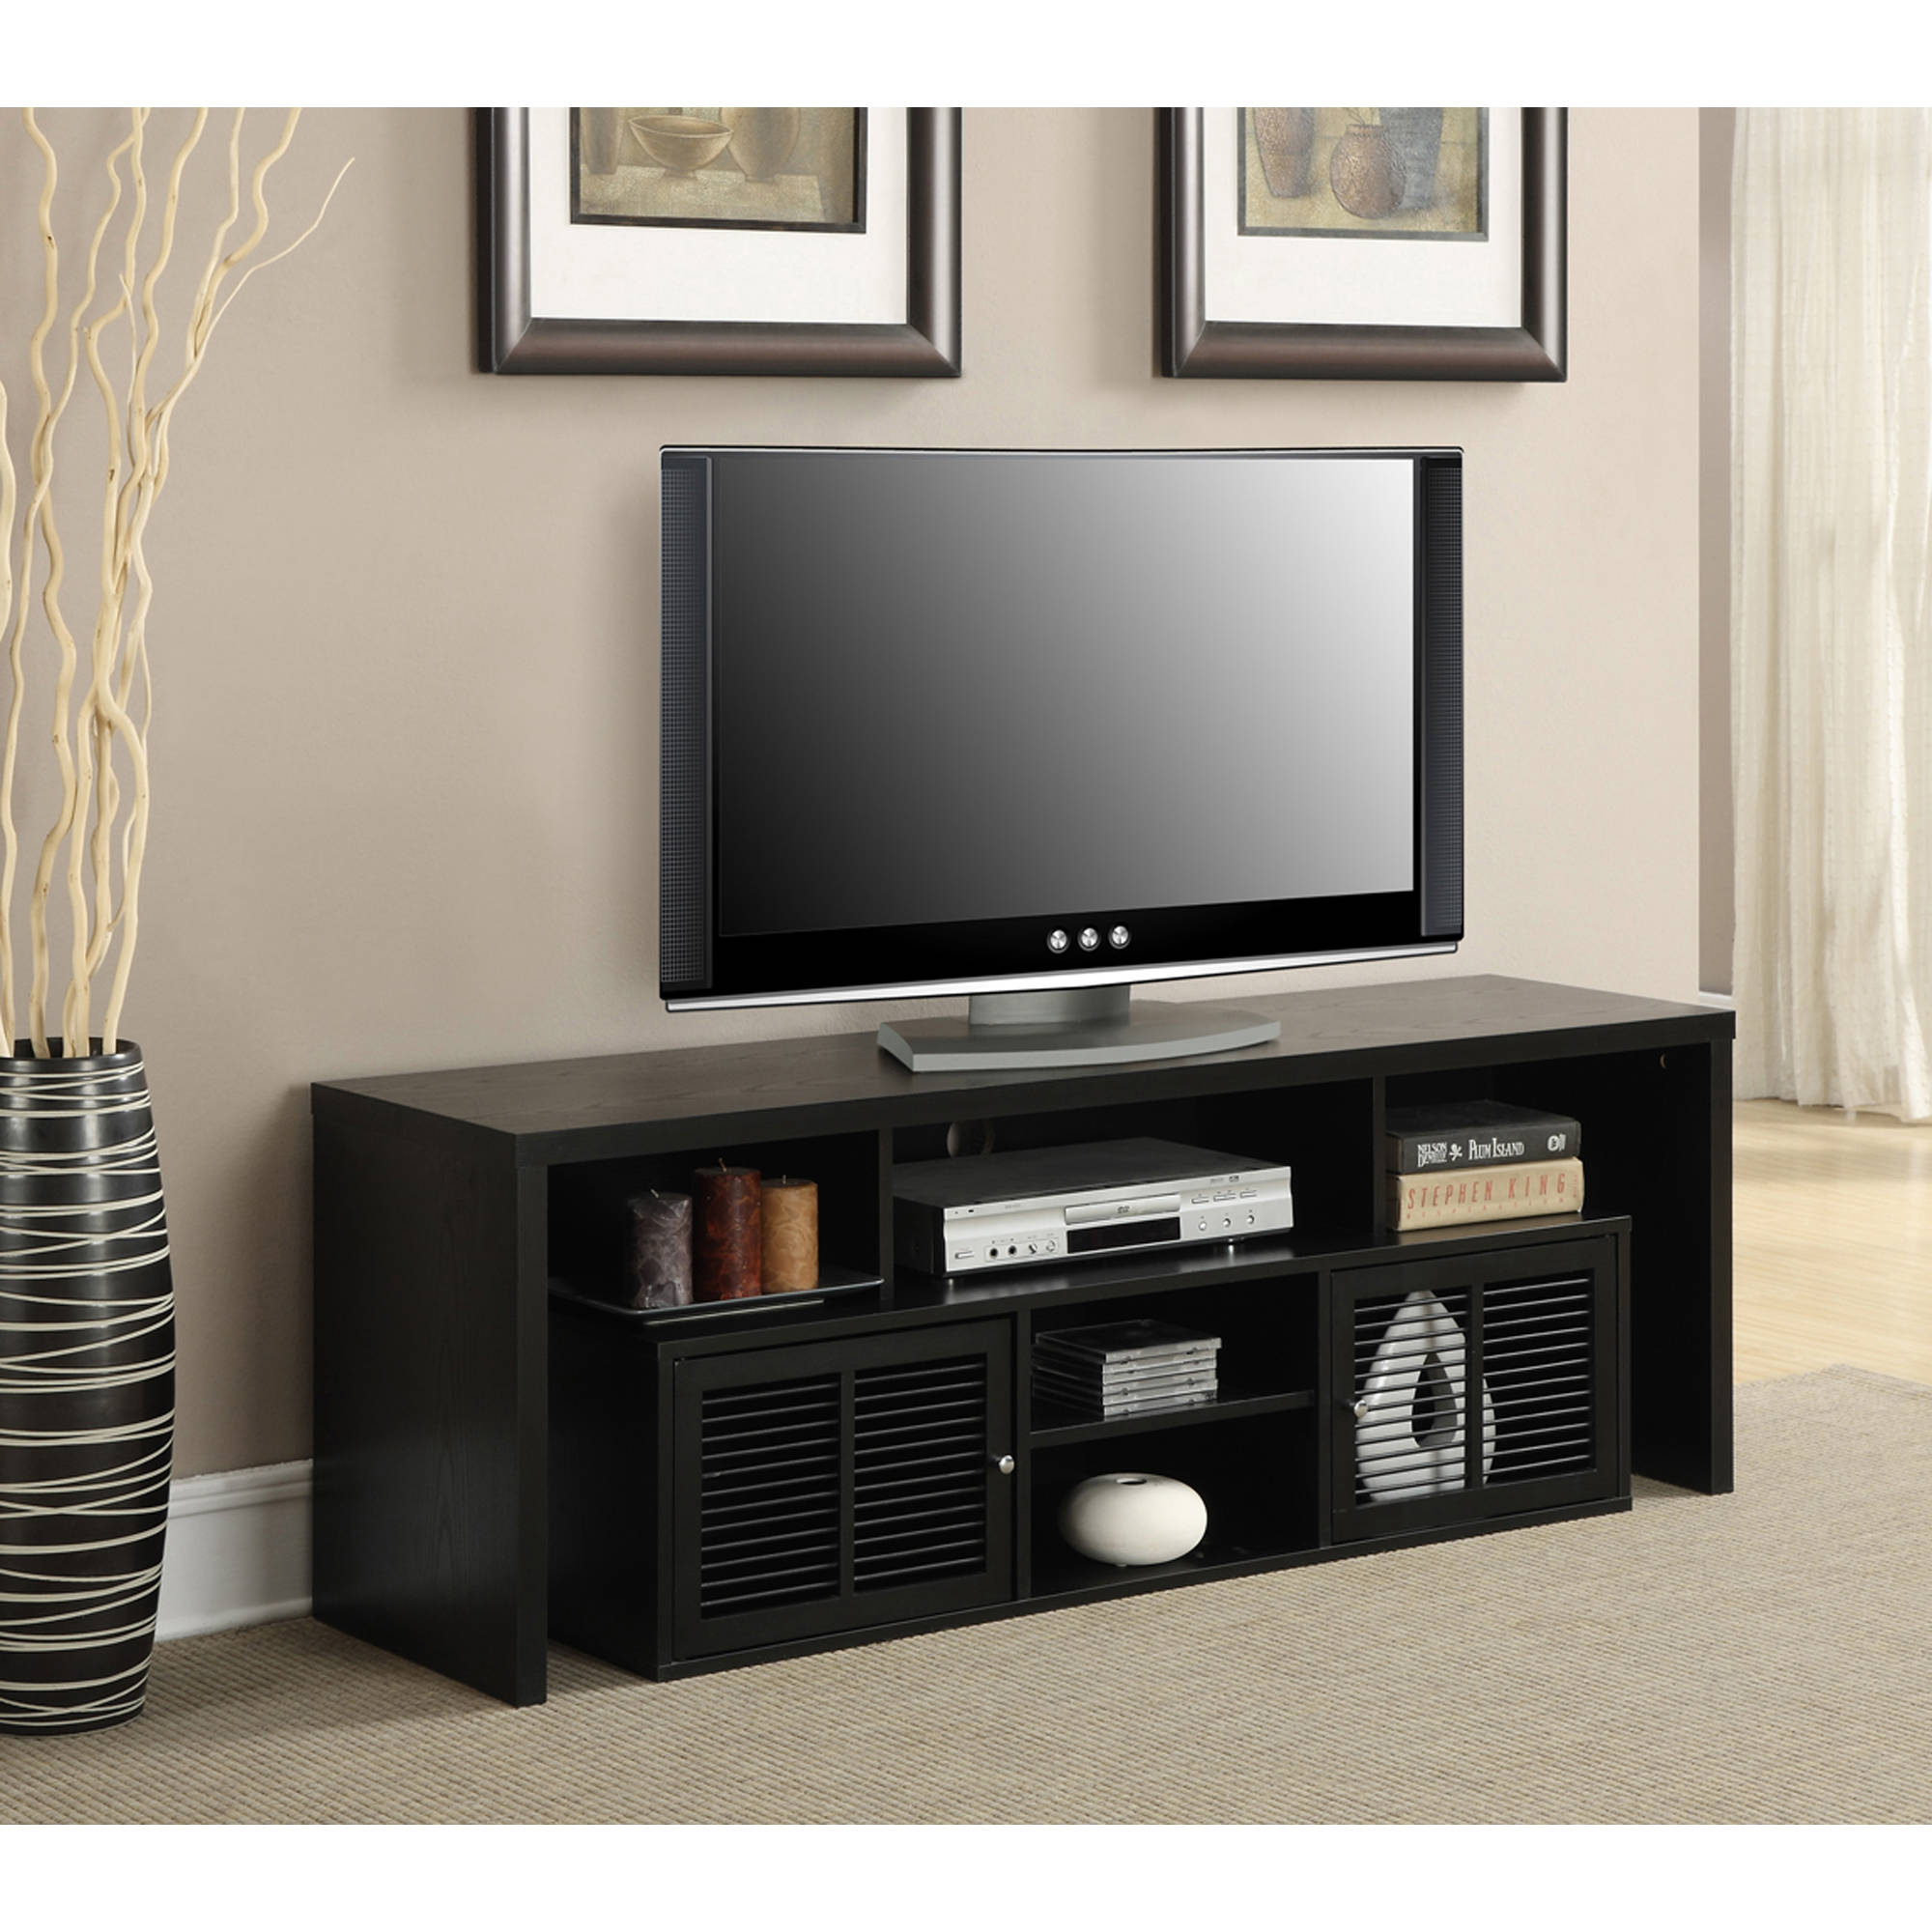 "Convenience Concepts Lexington TV Stand for TVs up to 60"" Walmart"